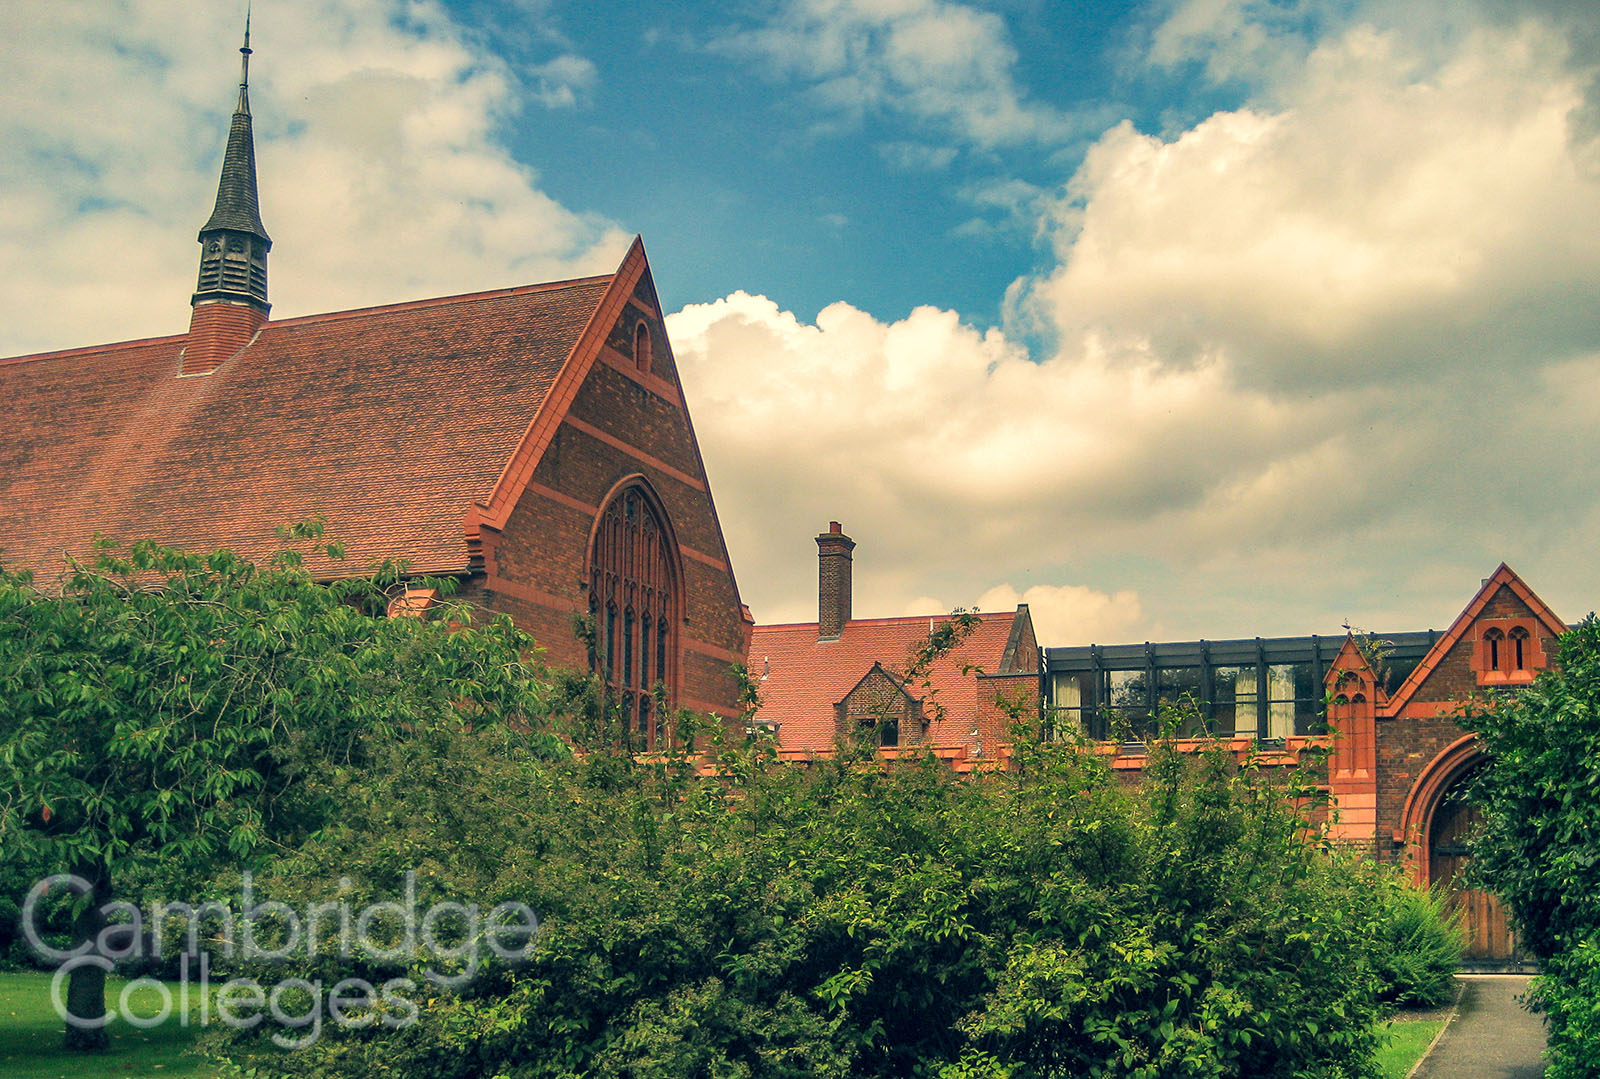 Girton College chapel, partially obscured by trees